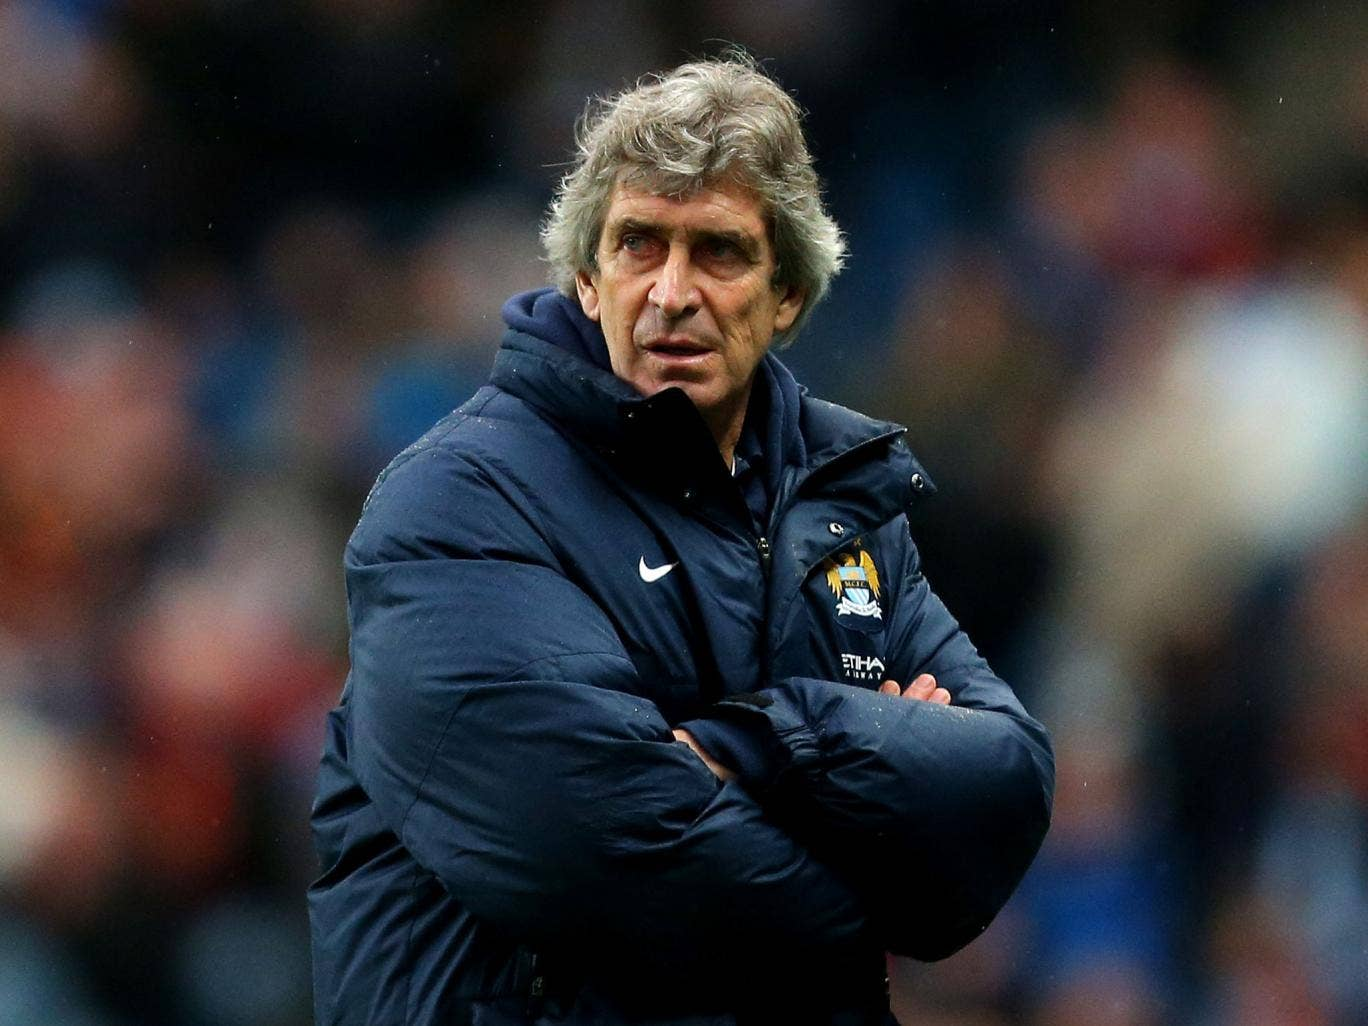 Manuel Pellegrini has brought calm and aassurance to City